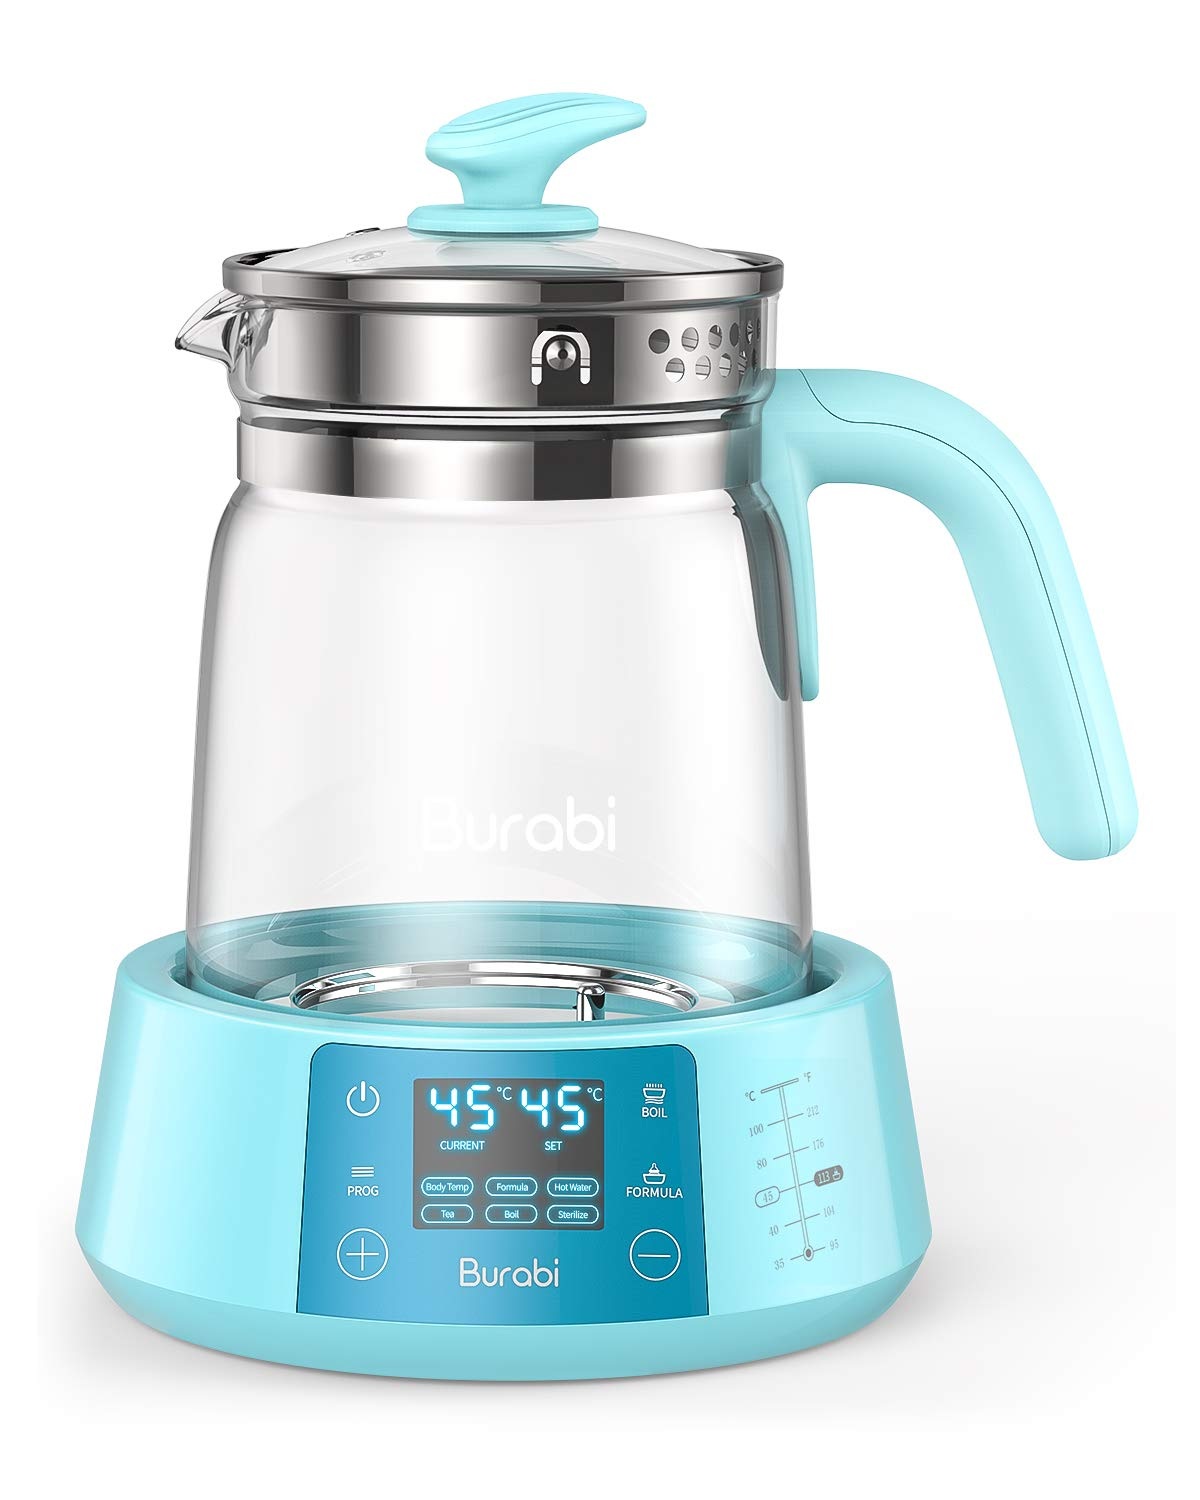 Baby Formula Ready Water Kettle with Precise Temperature Control (Keep Warm 24 Hours at Perfect Temp) Electric Boiler Heater for Night Feeding, Faster Than Bottle Warmer